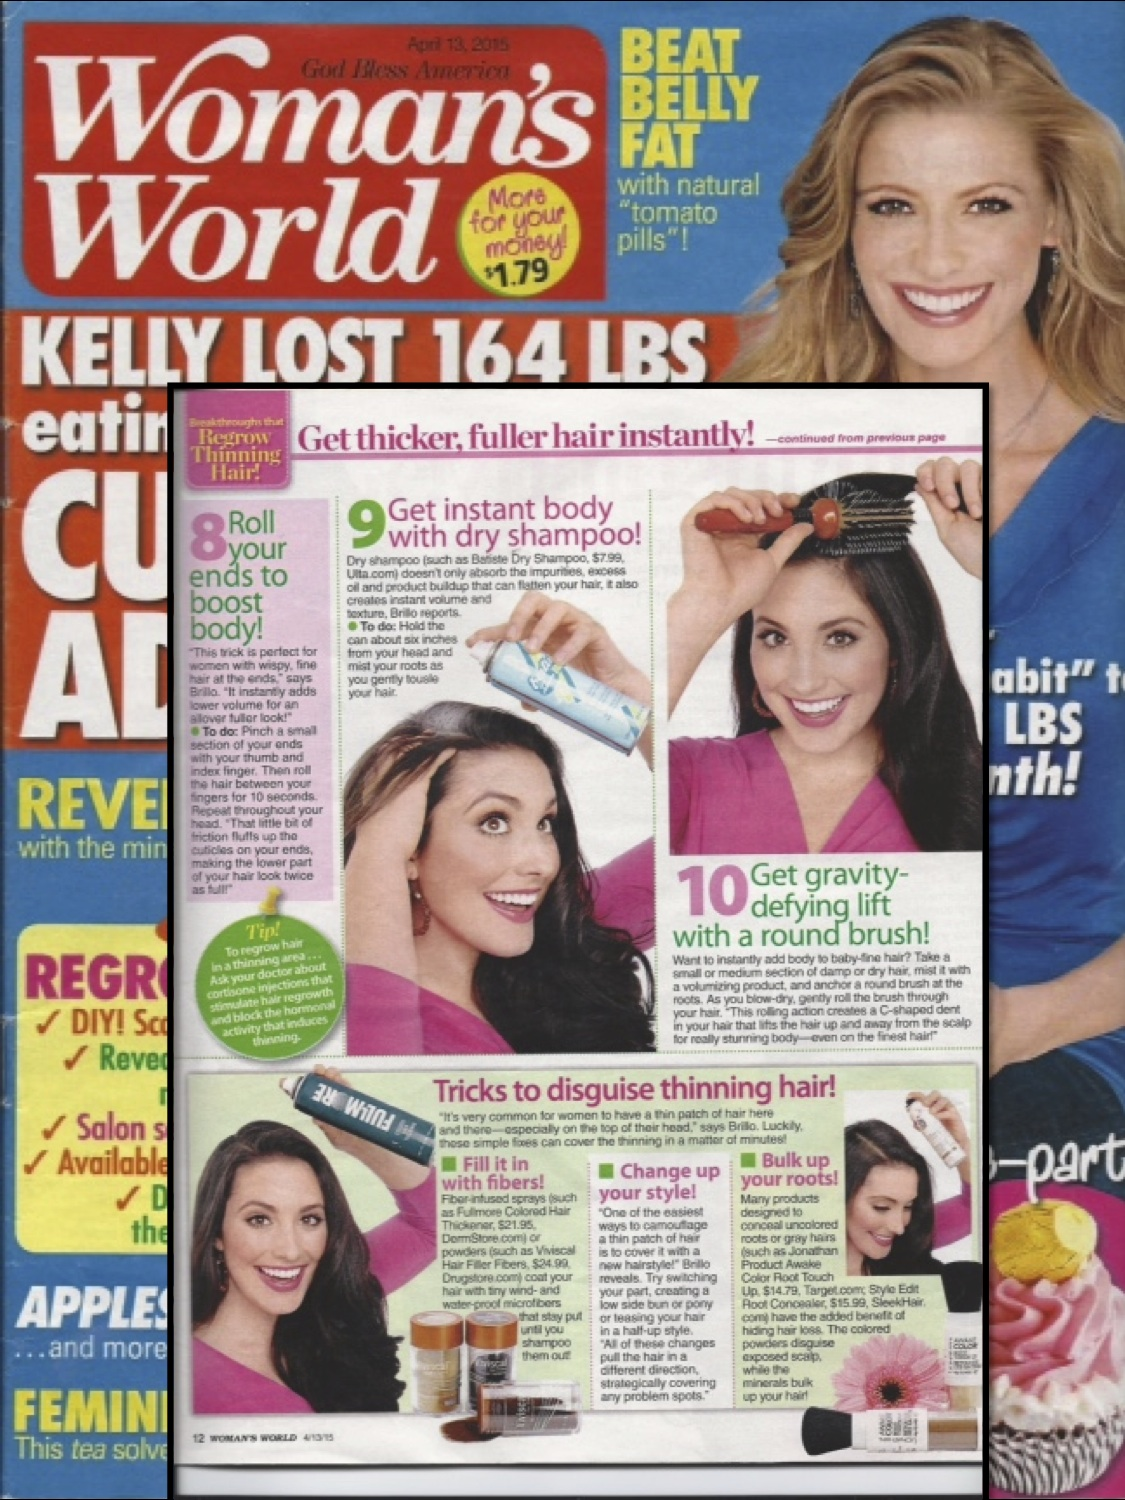 SEH15_Woman's World_April 2015.jpg